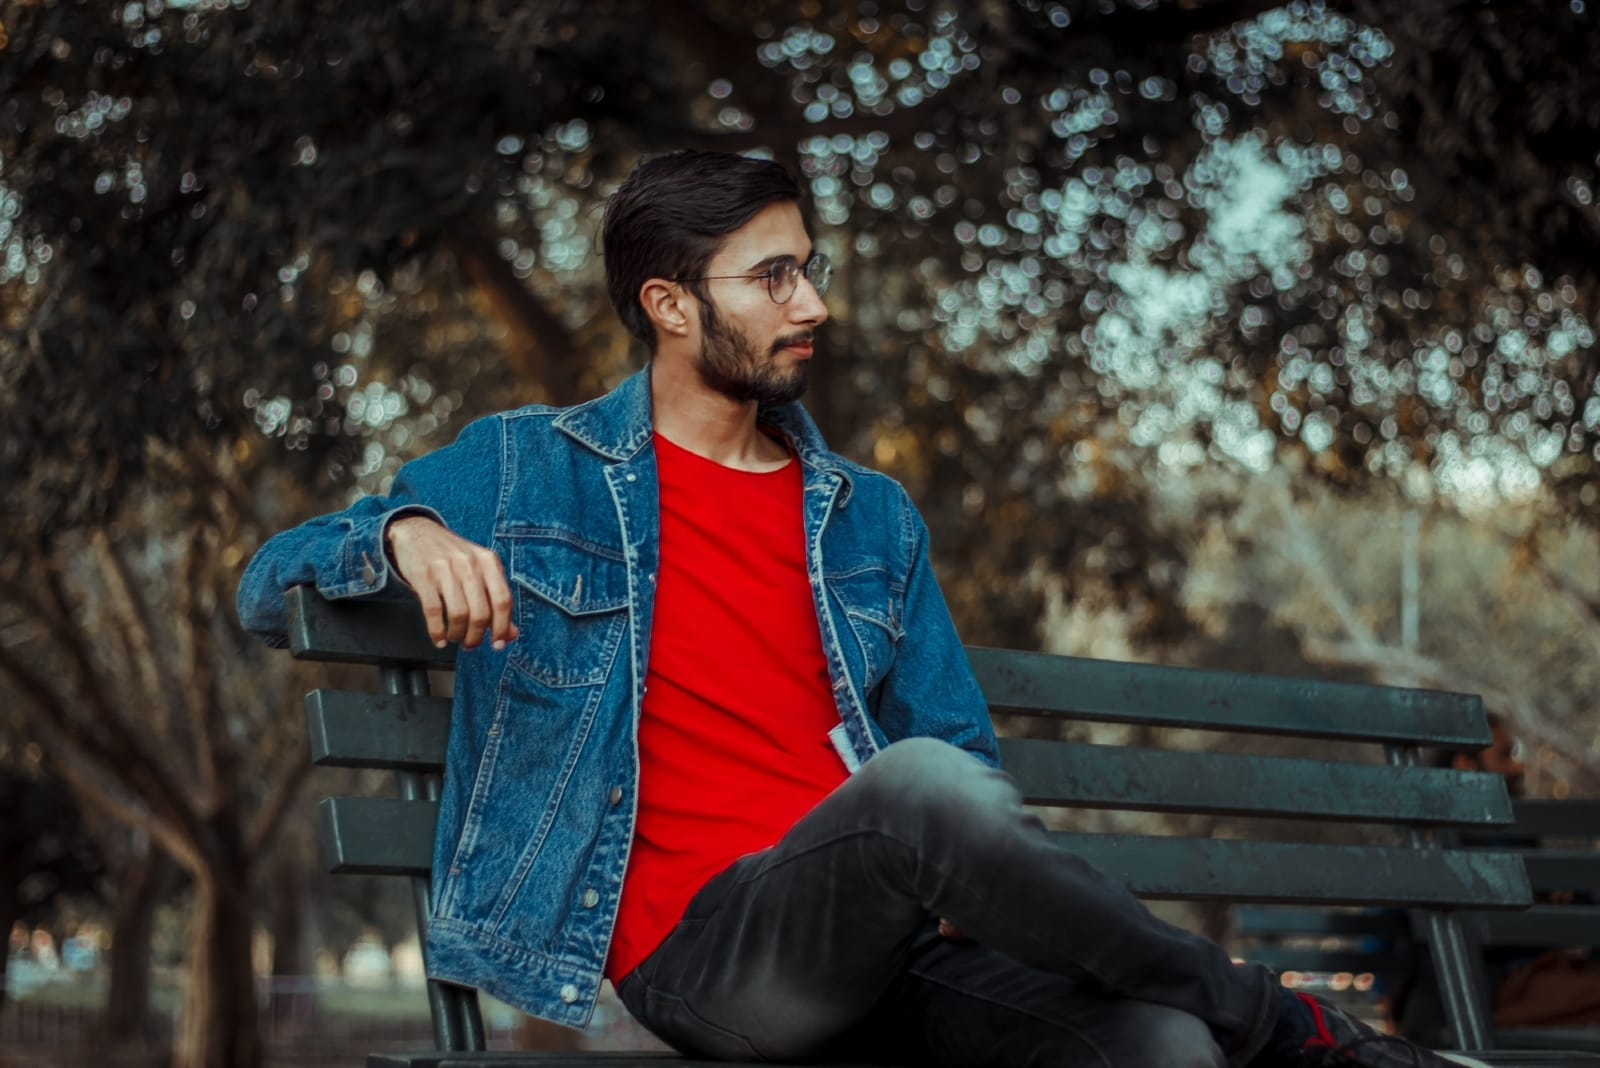 man in denim jacket sitting on bench